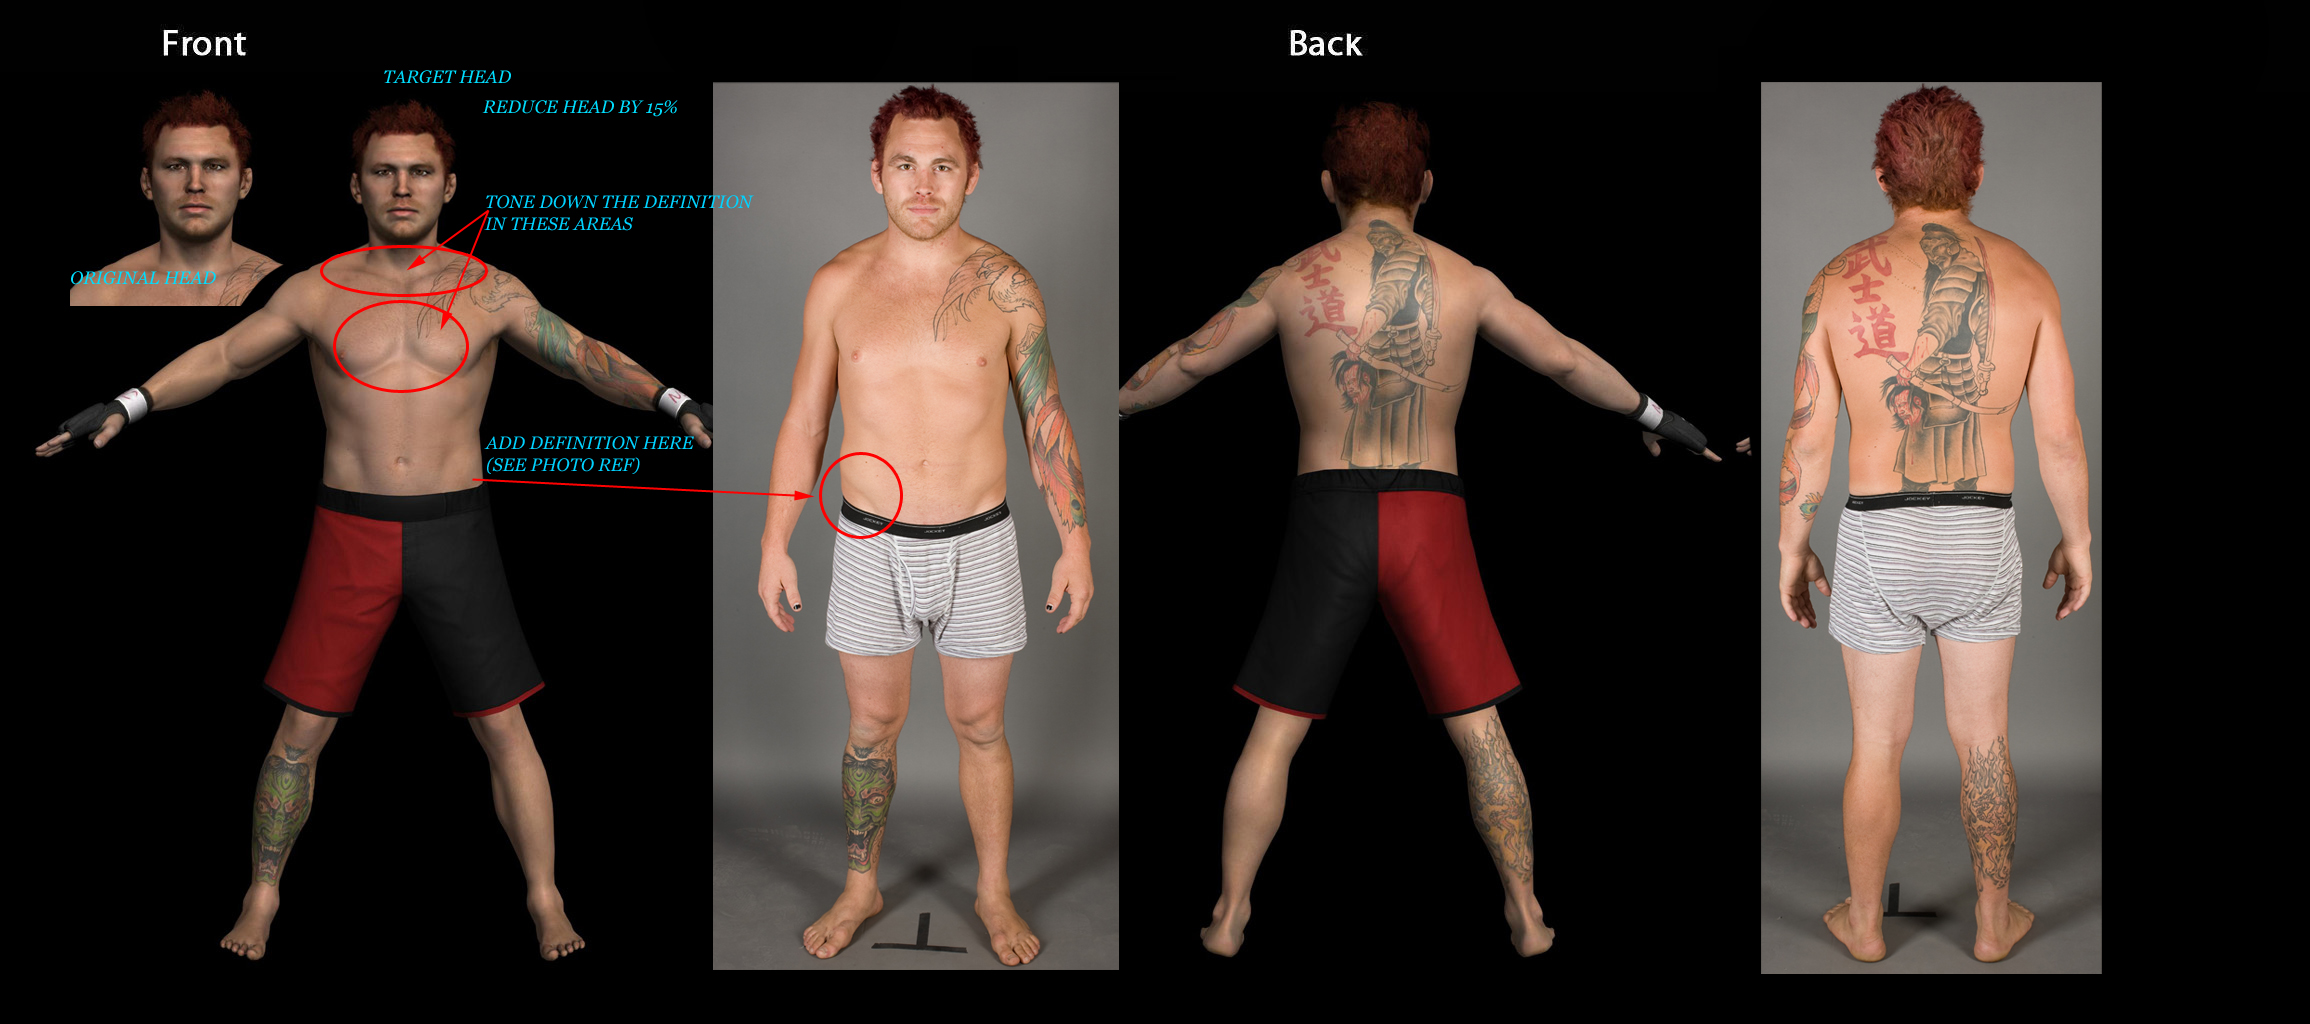 026_chris_leben_max_body_texture copy.jpg